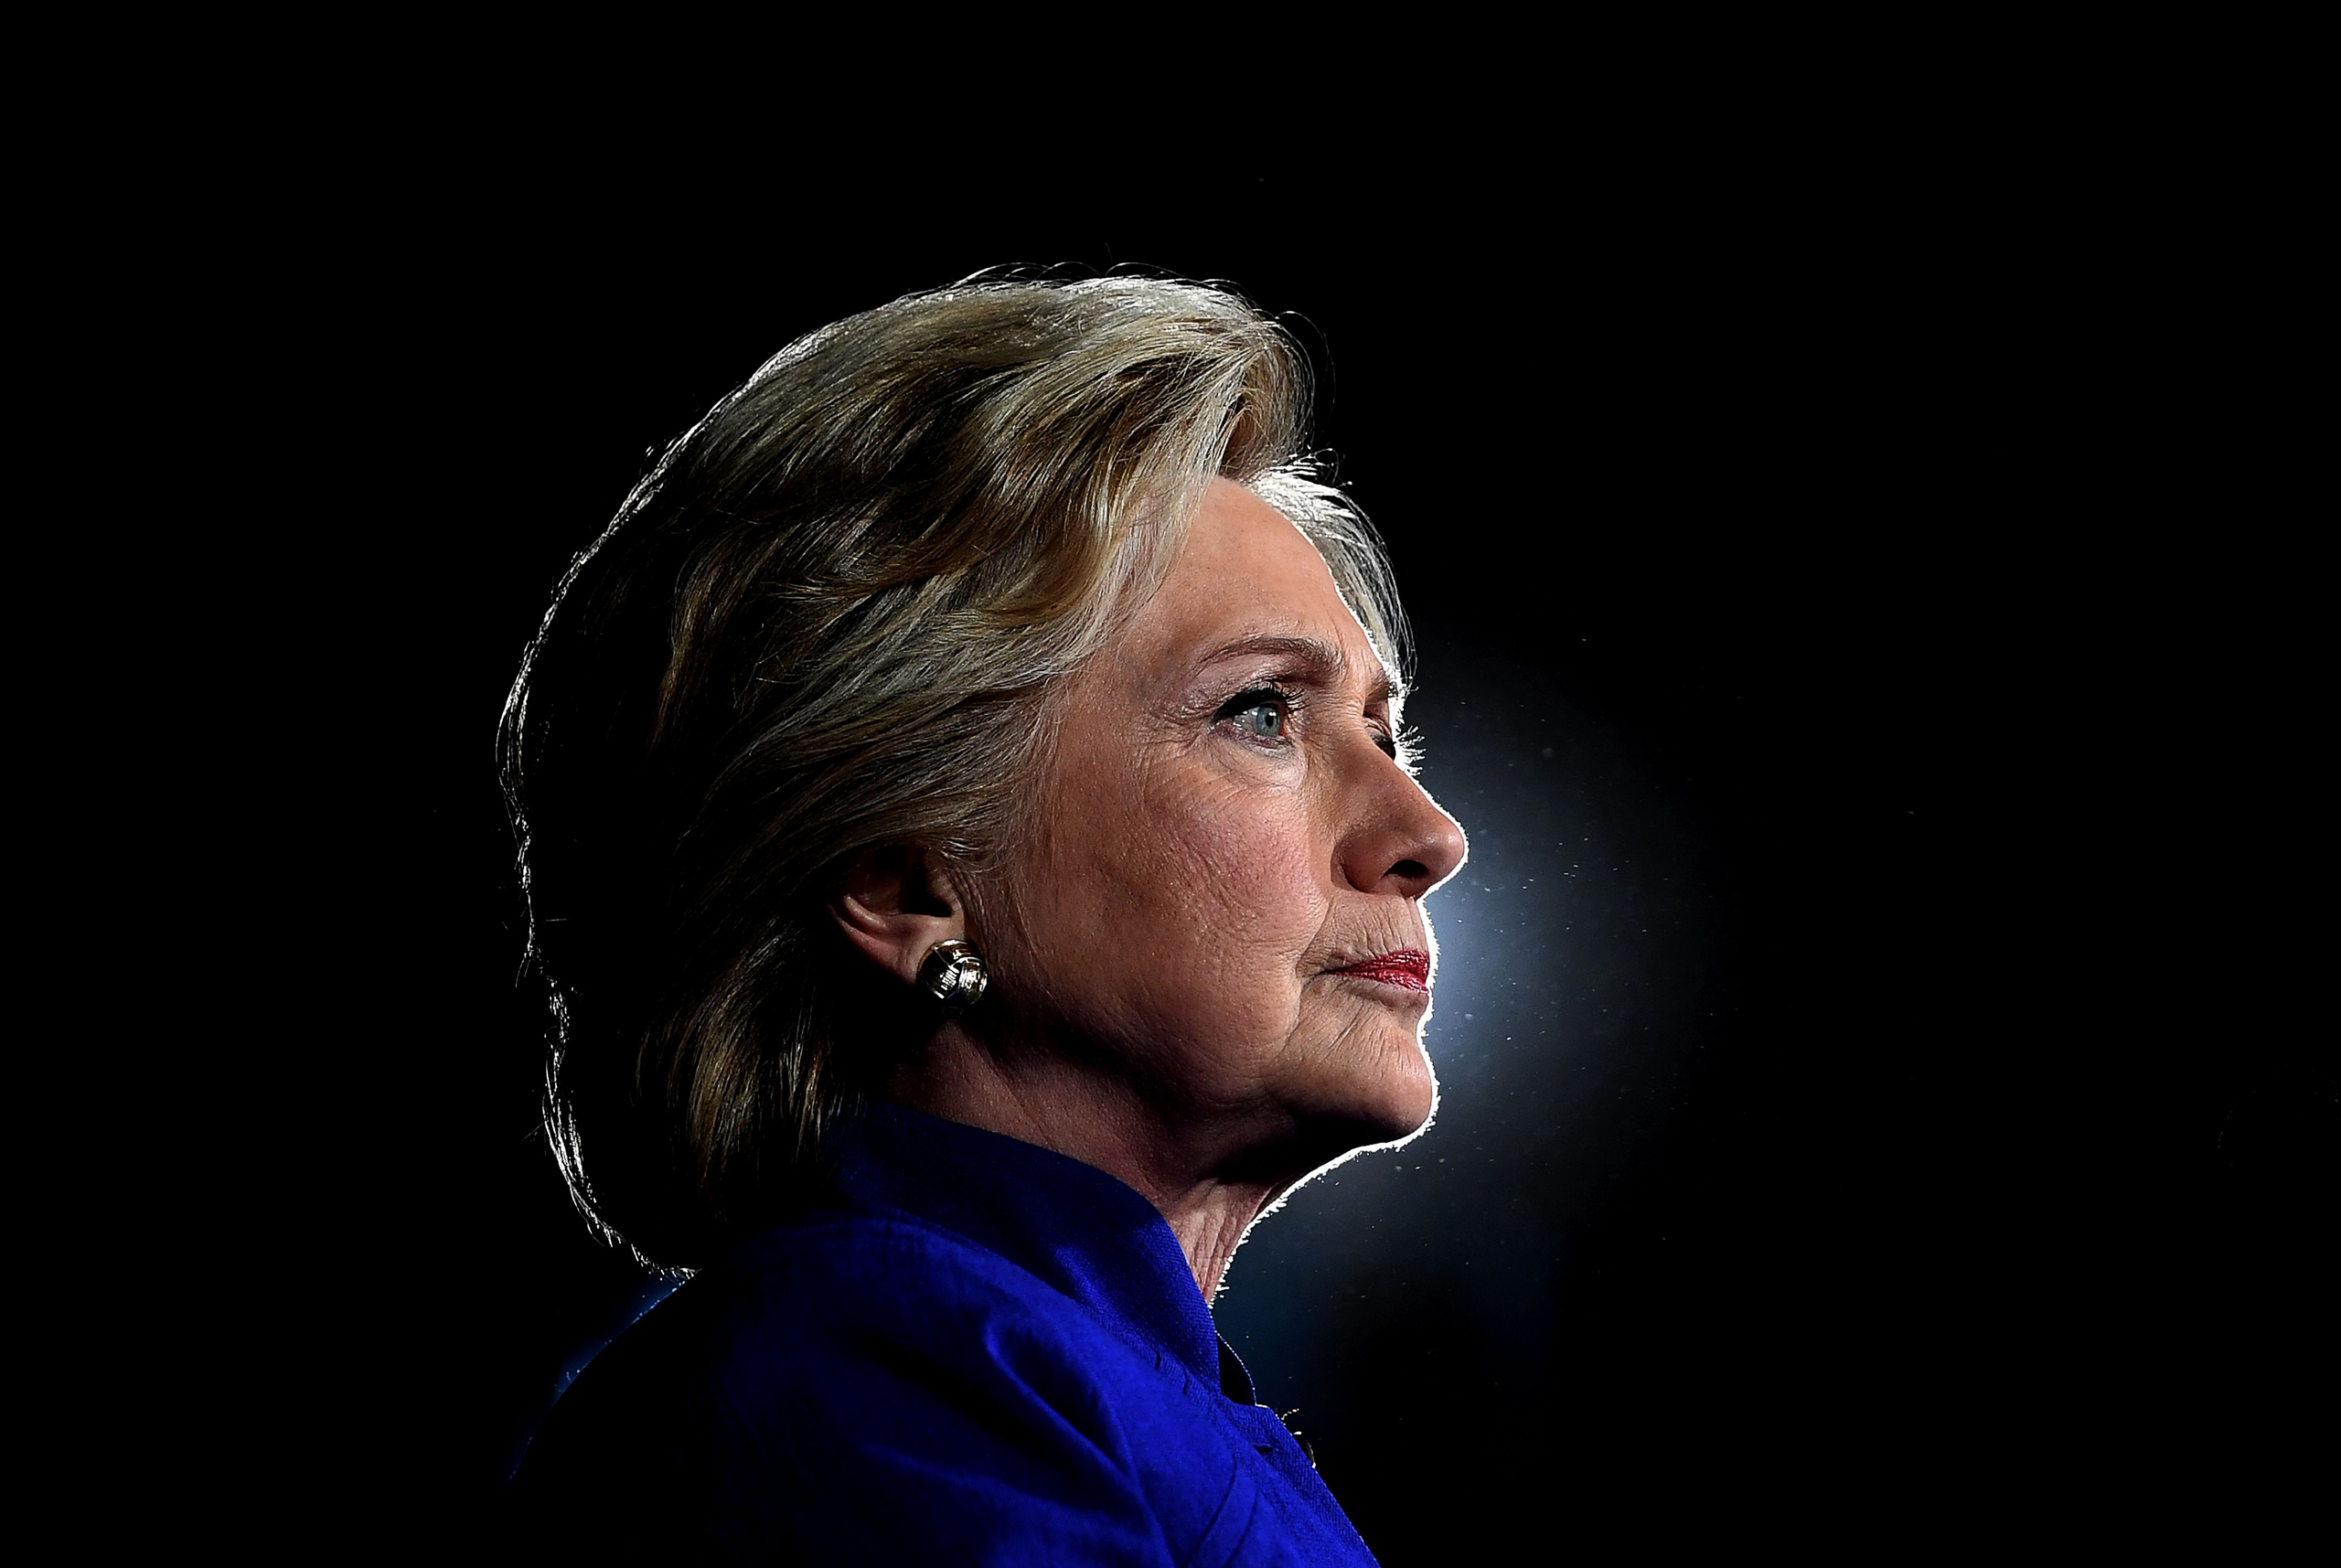 Hillary Clinton looks on during a campaign rally in Tempe, Arizona, on Nov. 2, 2016.